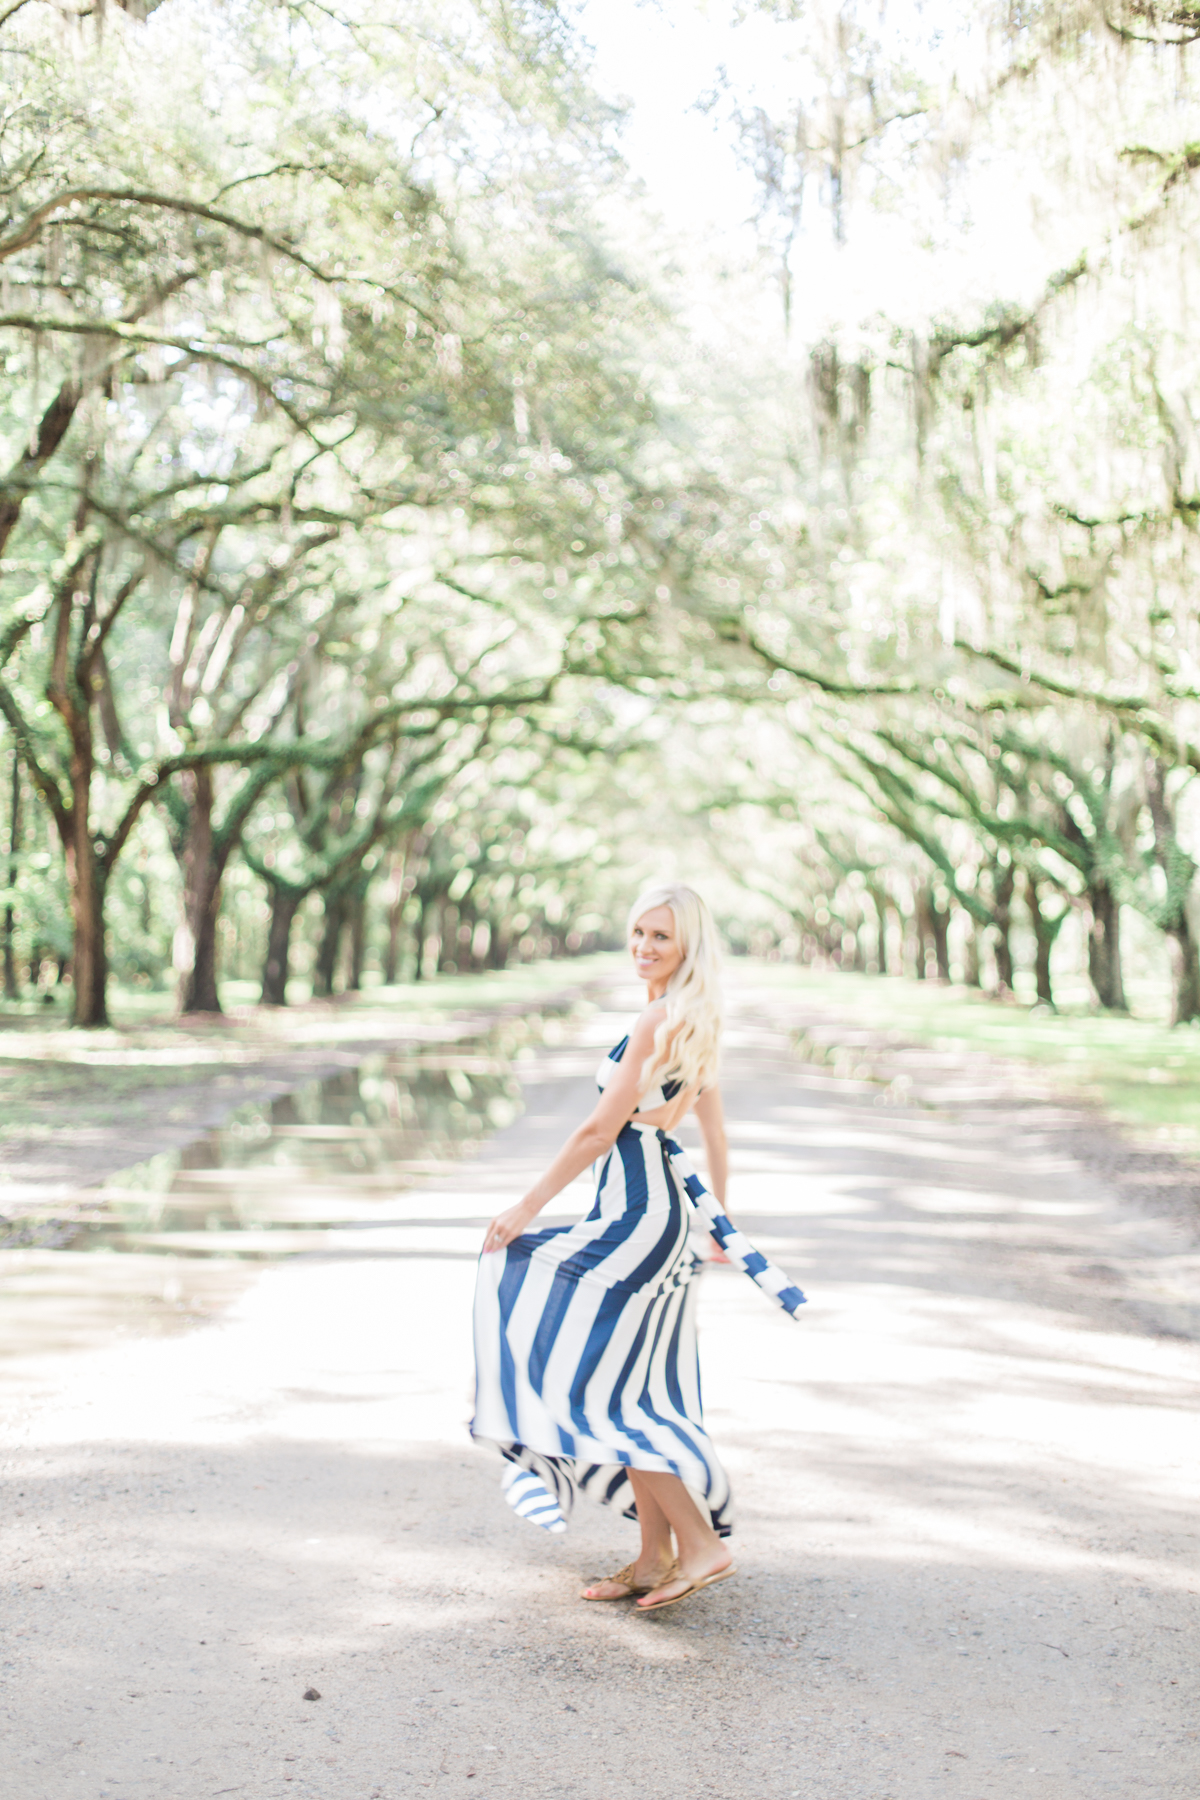 McKenna_Bleu_Fashion_Travel_Blog_Savannah_Georgia_photo-253